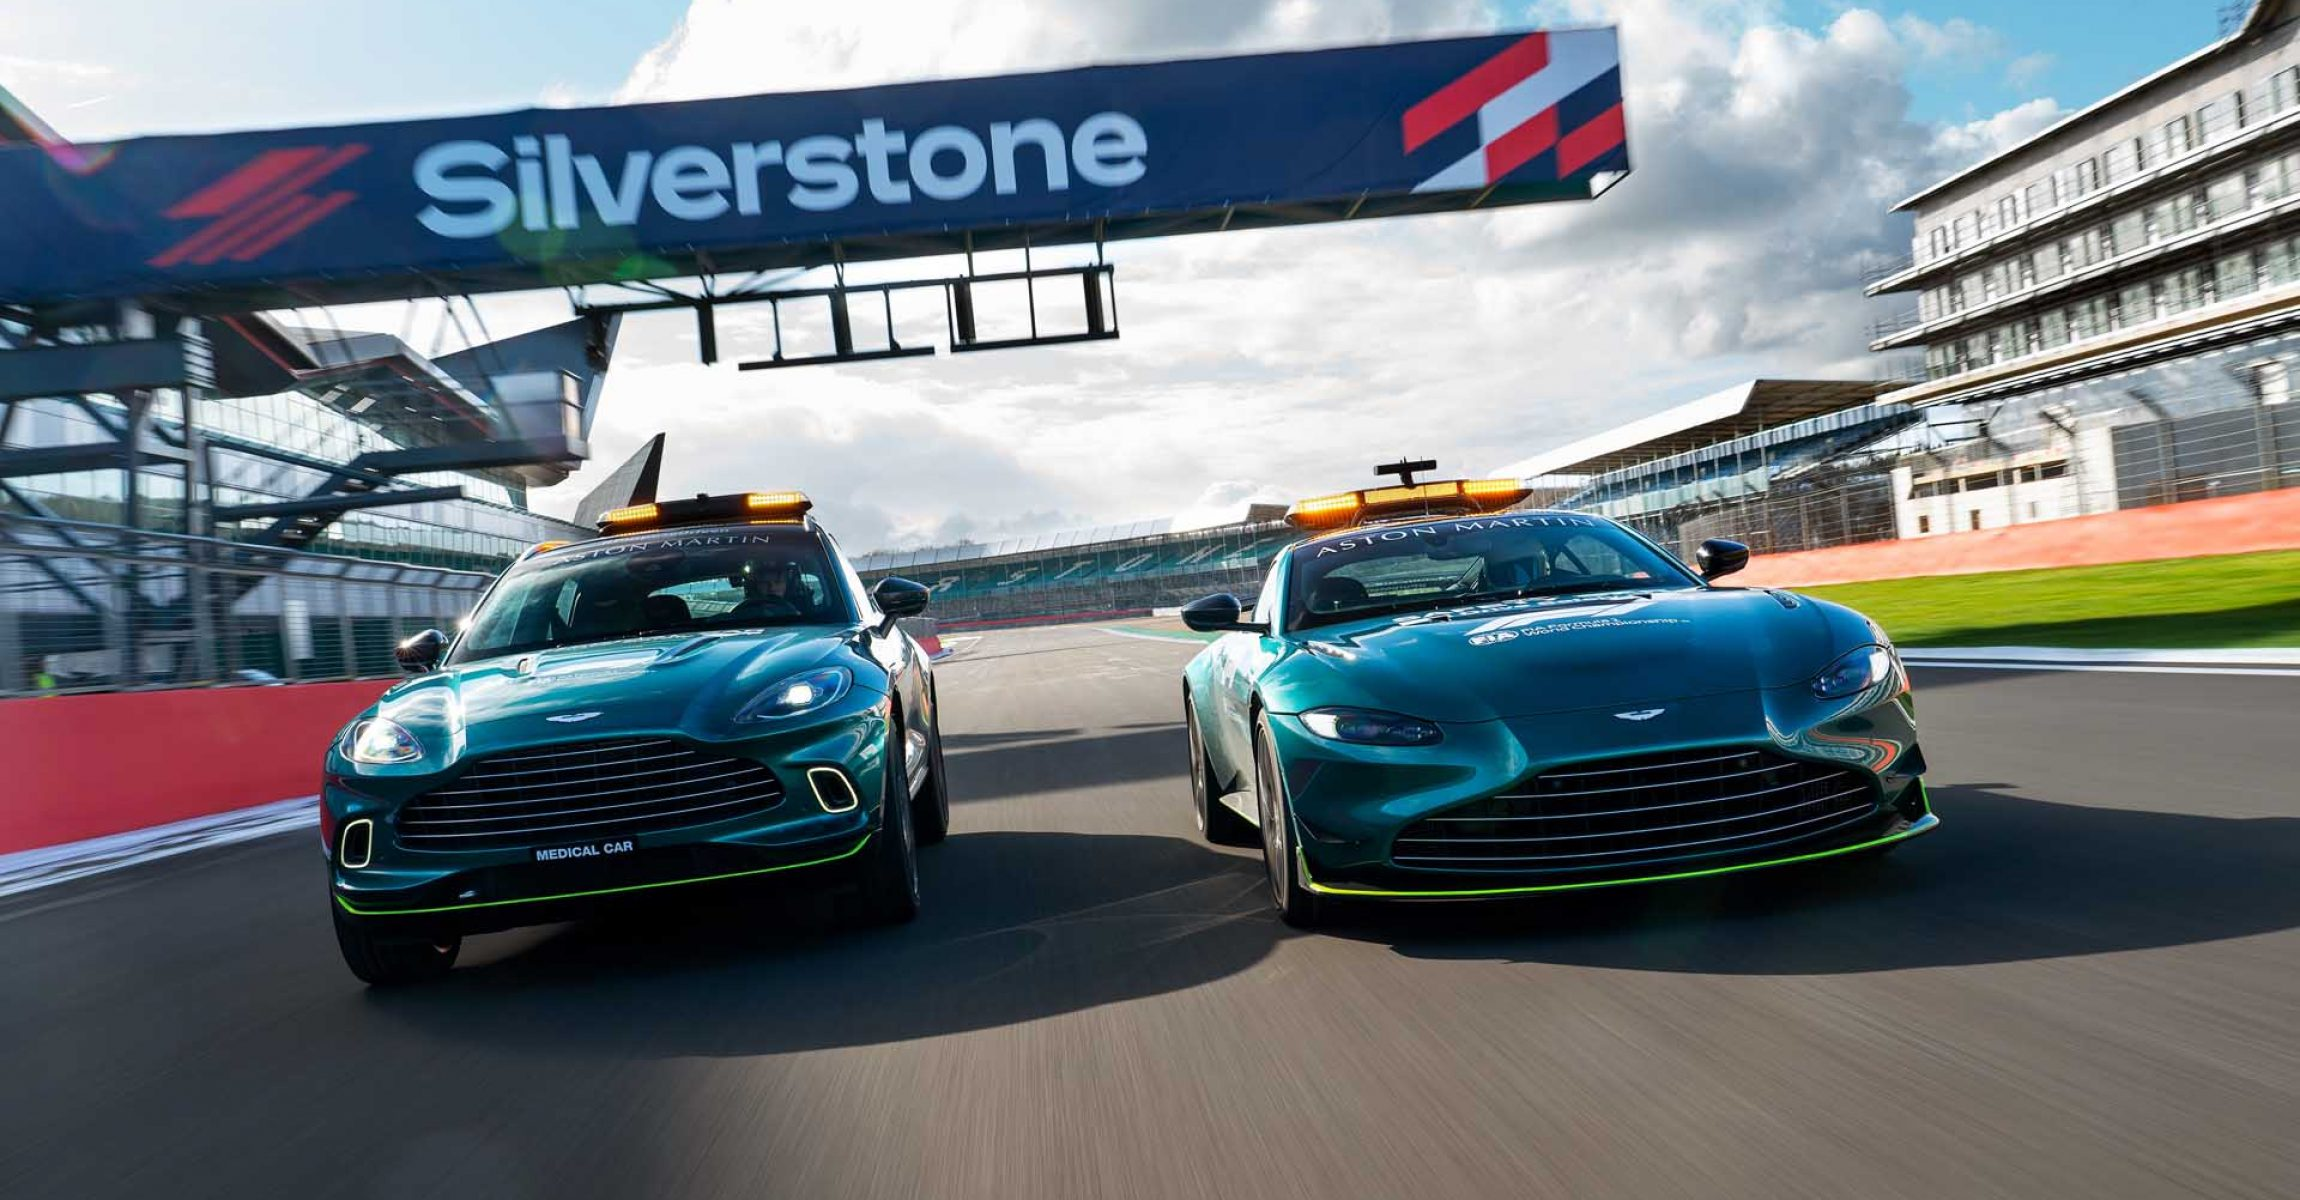 Aston Martin VantageDBXOfficial Safety and Medical cars of Formula One01